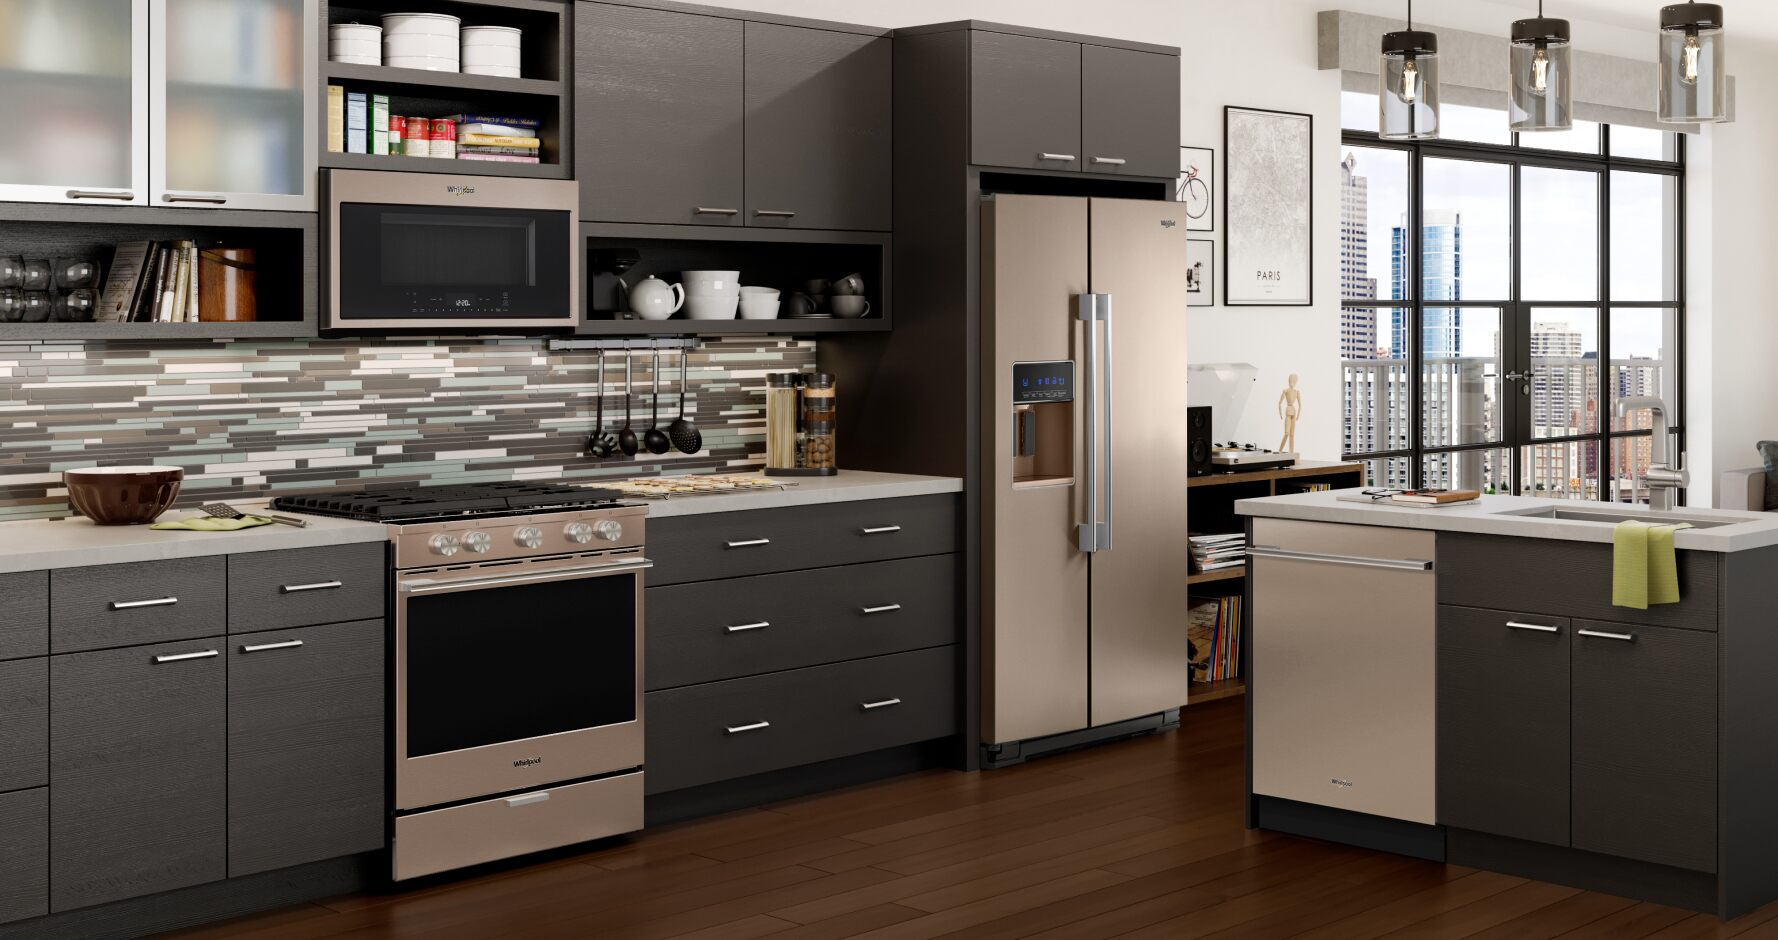 hight resolution of a kitchen featuring a complete suite of kitchen appliances